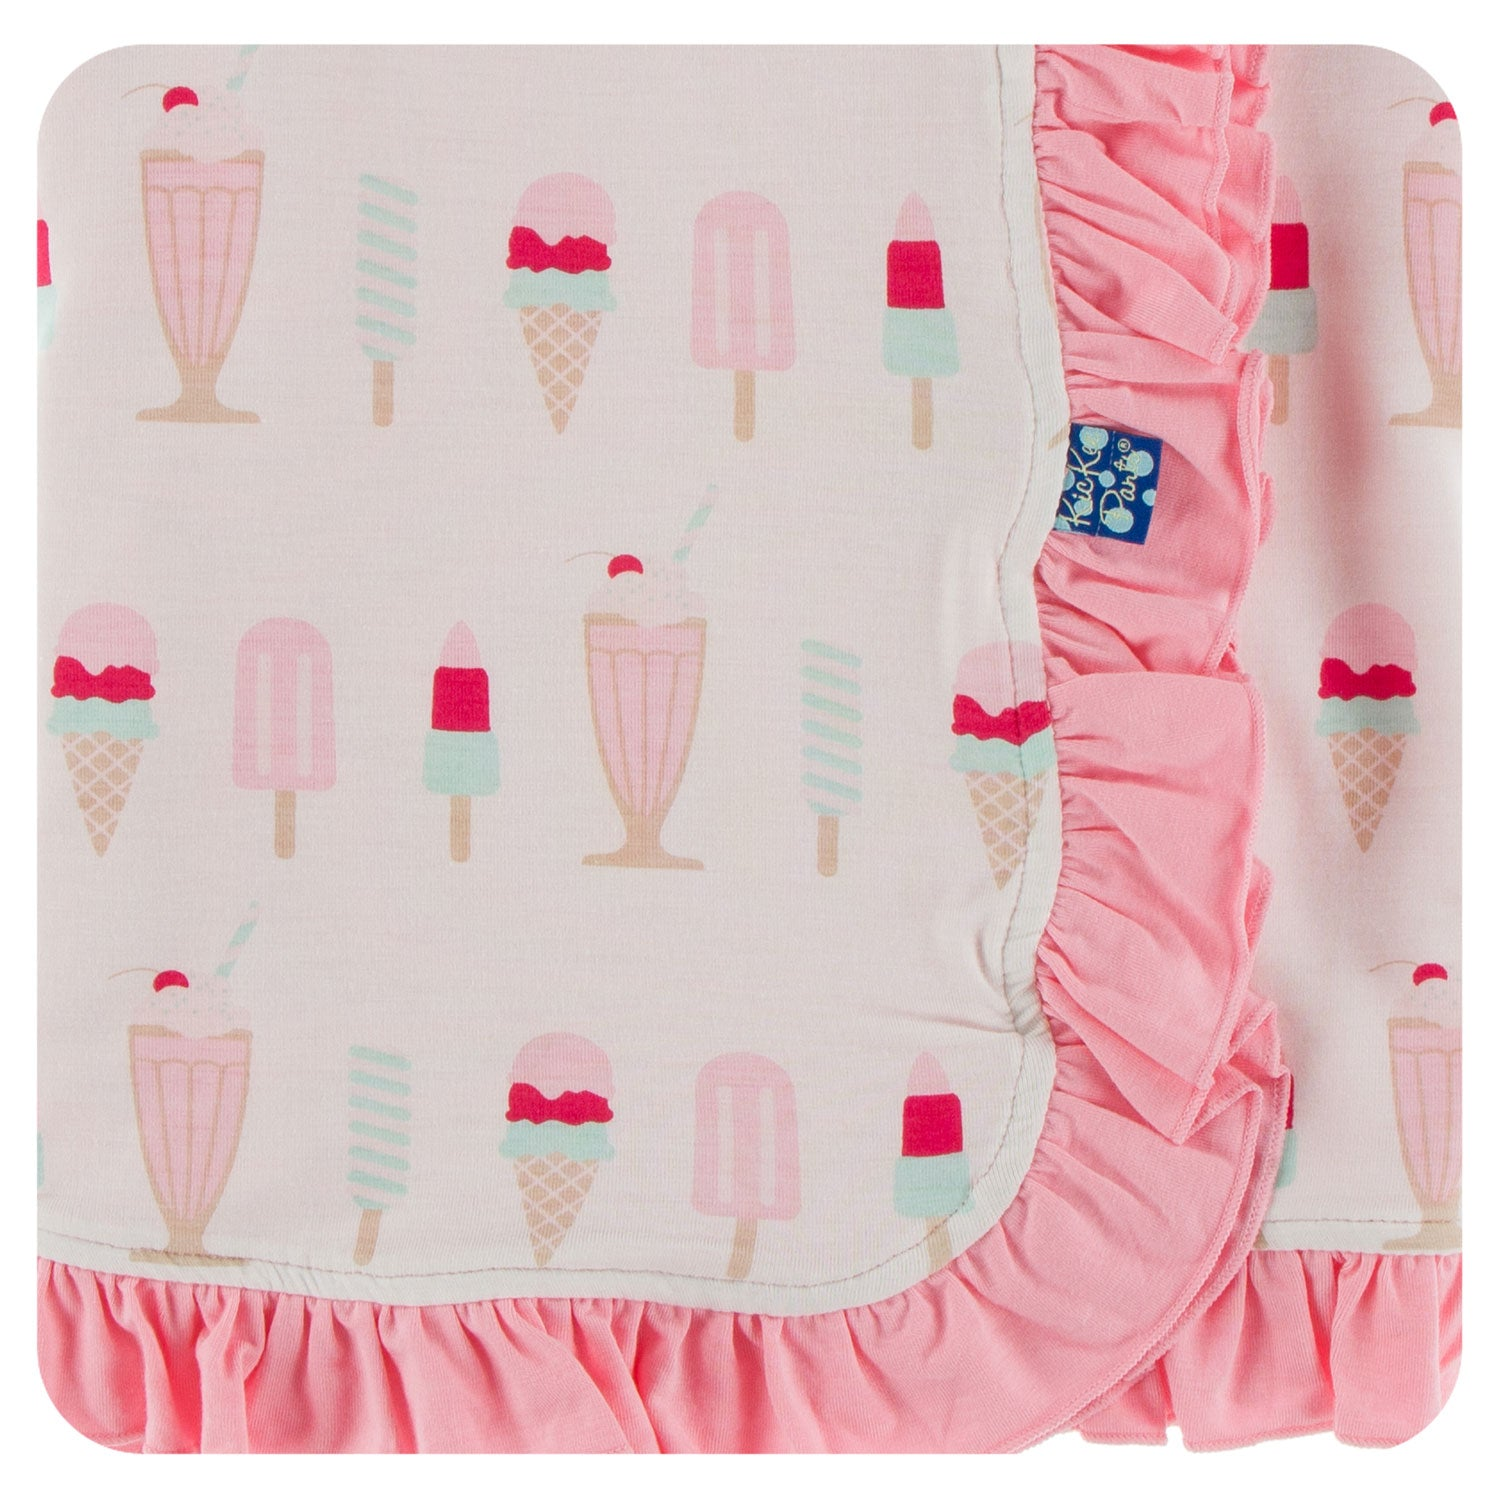 KicKee Pants Ruffle Stroller Blanket - Natural Ice Cream Shop